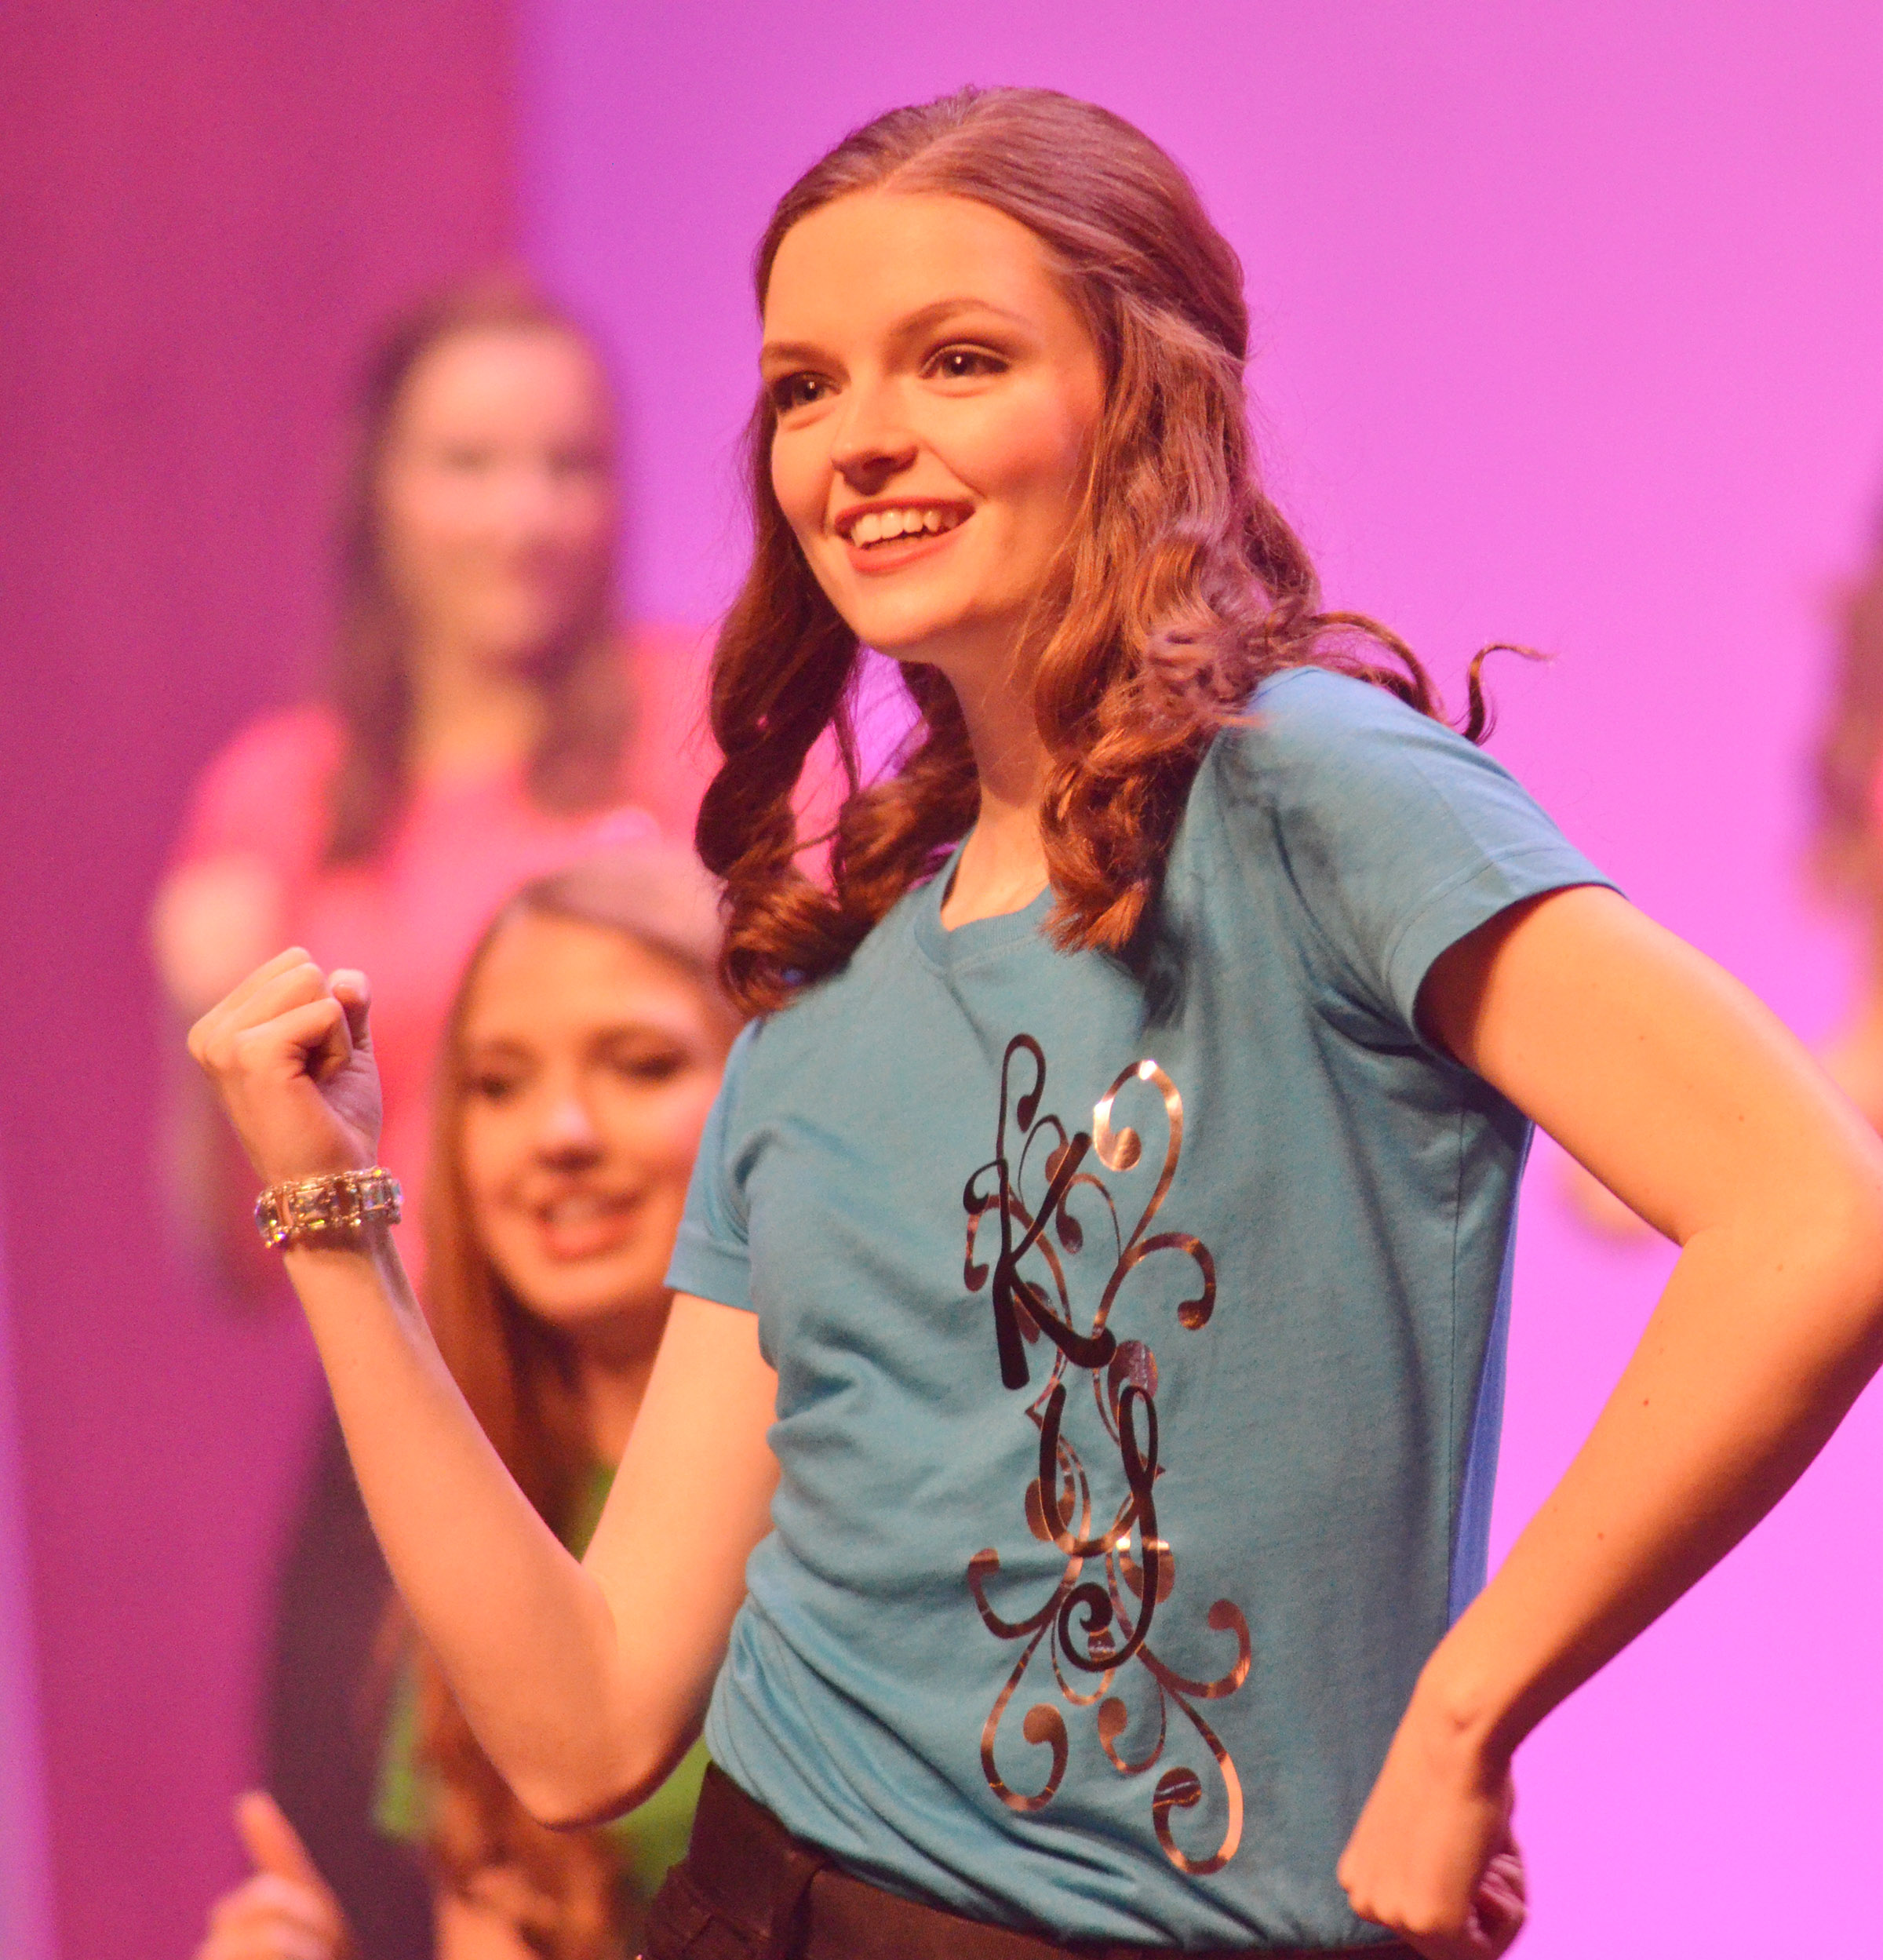 CHS senior Blair Lamb competes in the state DYW program. She was named fourth runner-up.